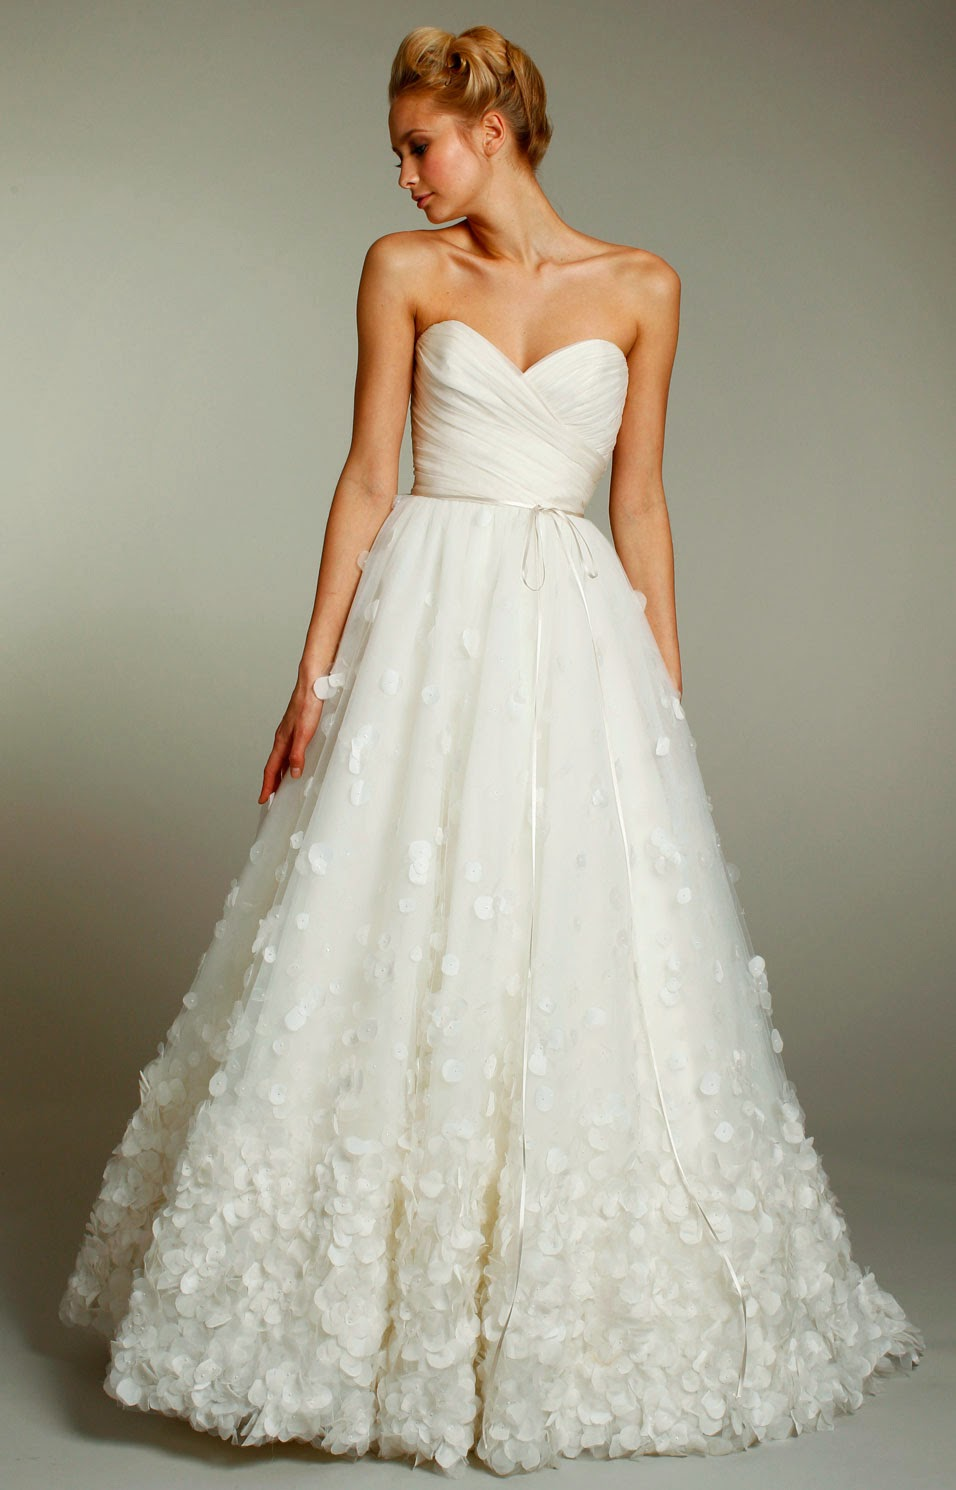 Cheap ivory wedding dresses under 100 dollars design ideas for 100 dollar wedding dresses